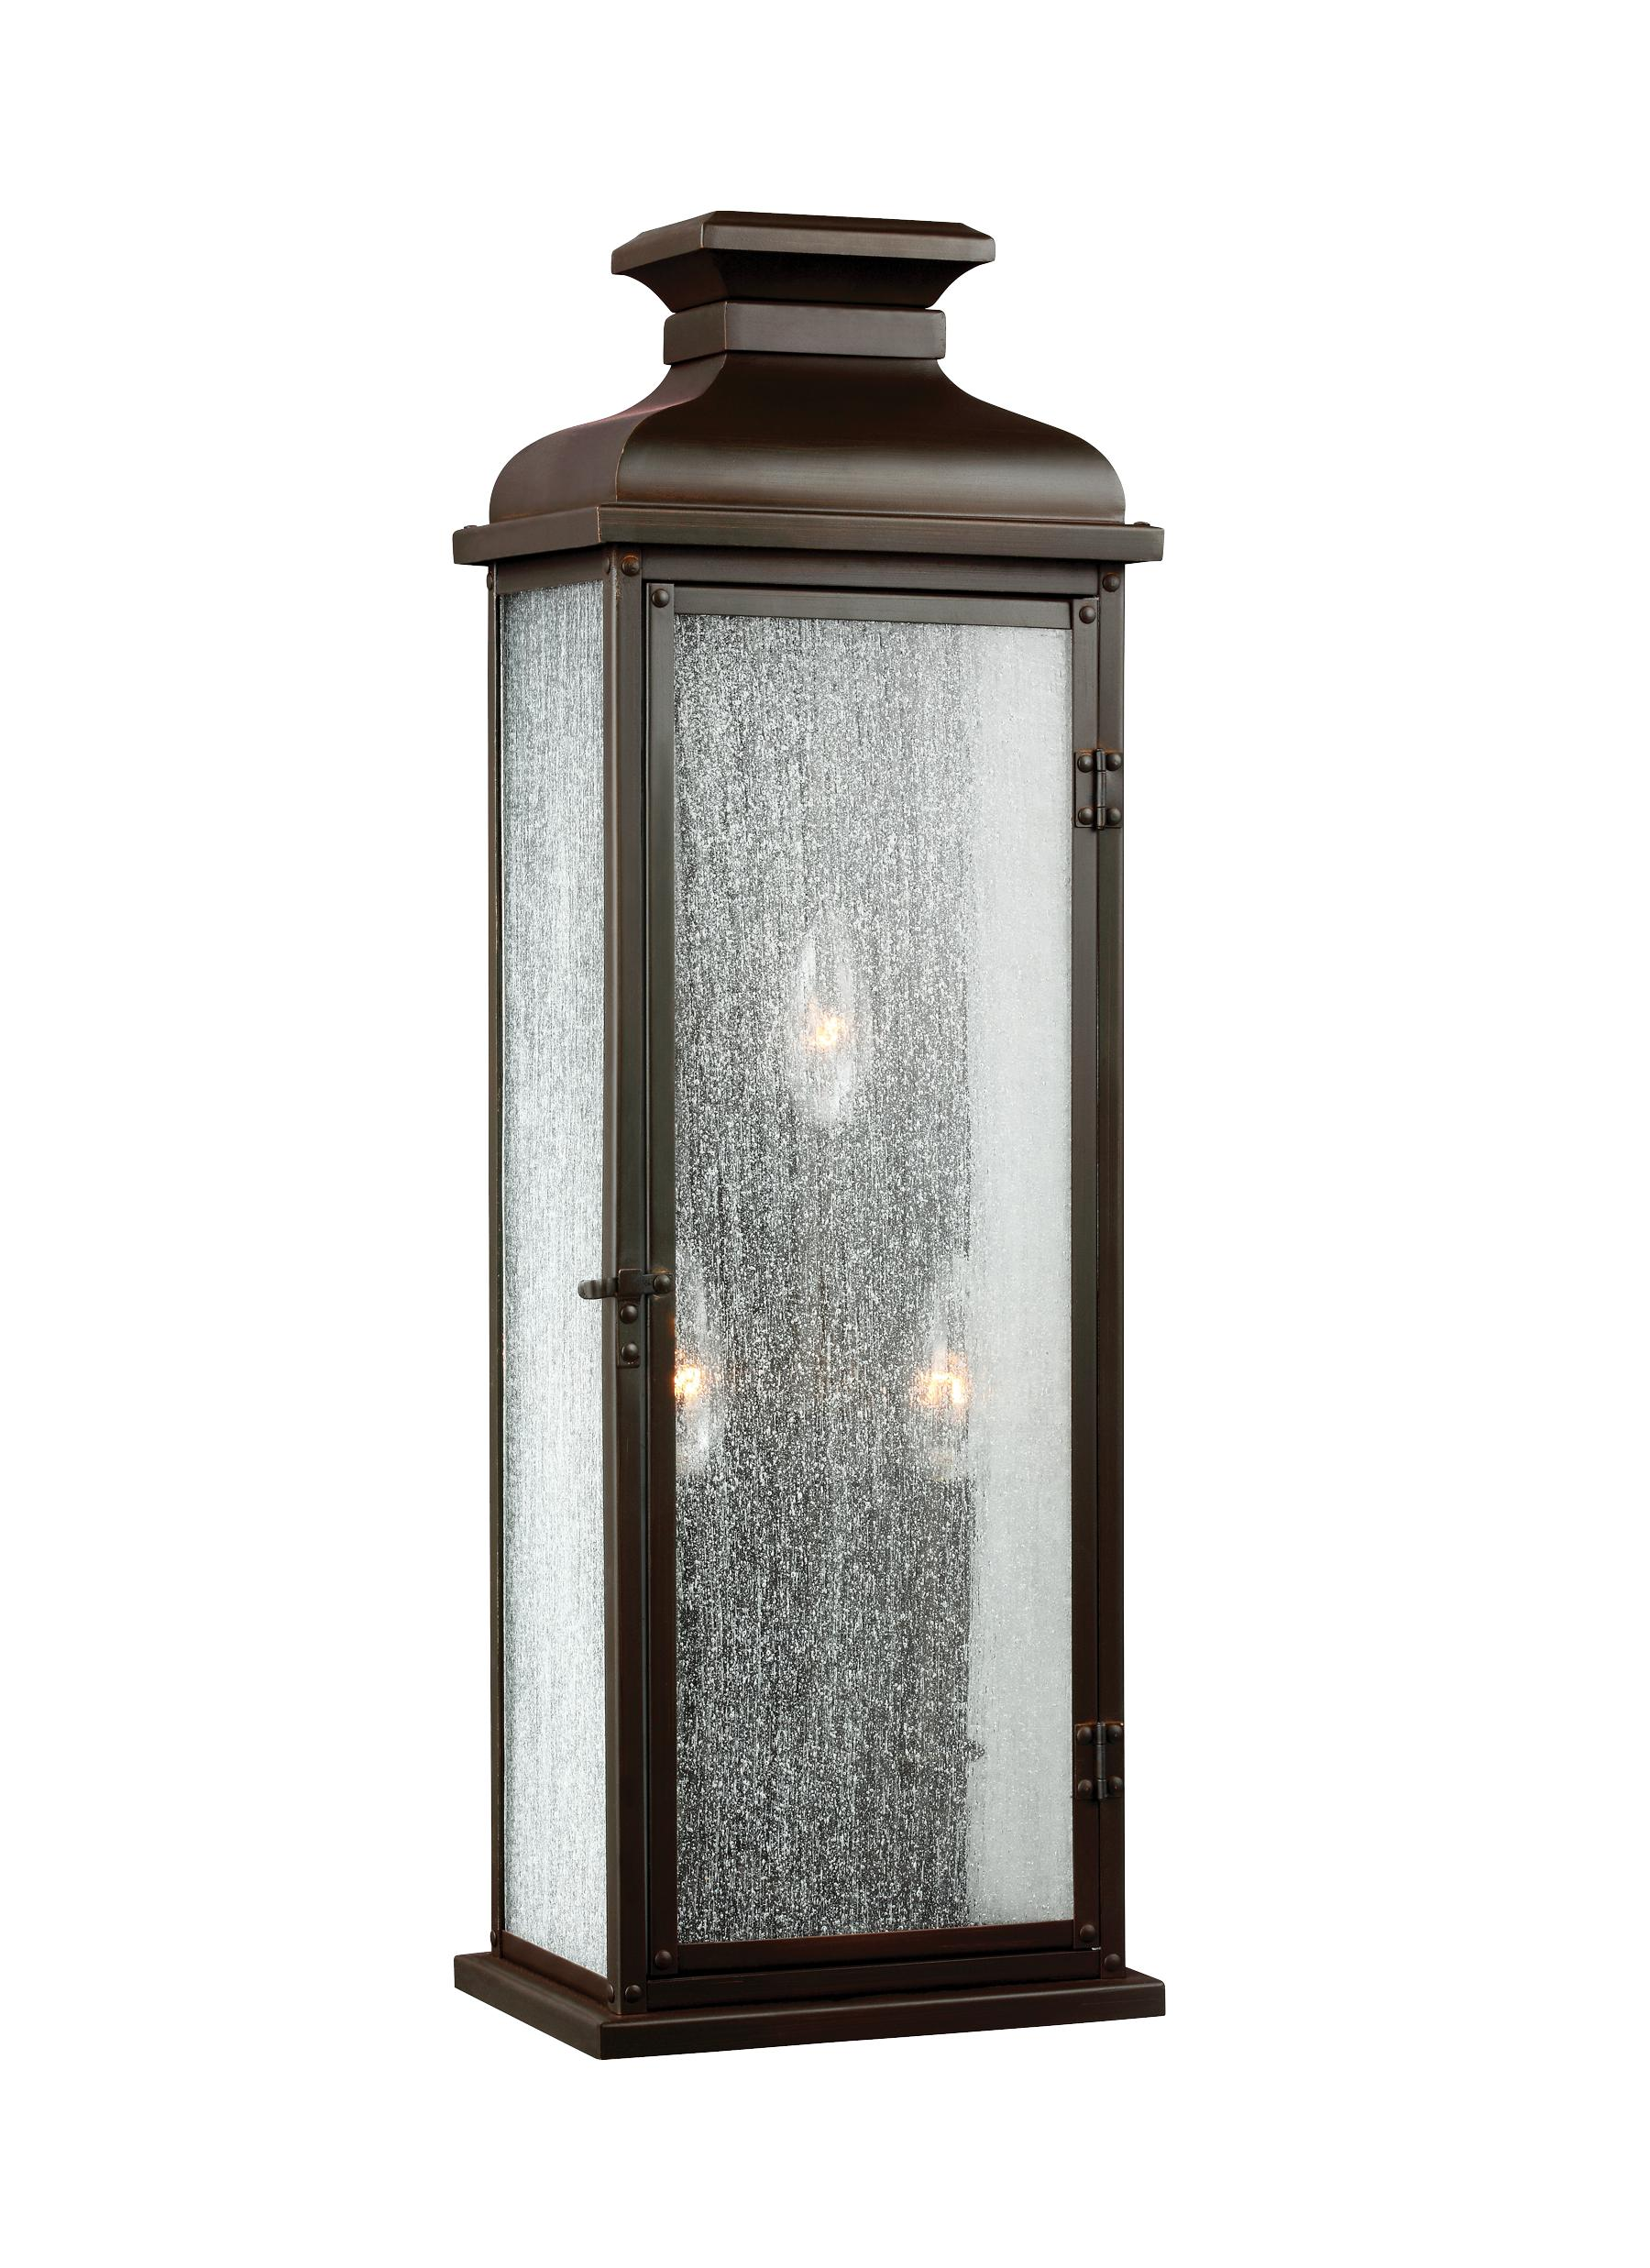 Ol11102dac 3 Light Outdoor Sconce Dark Aged Copper